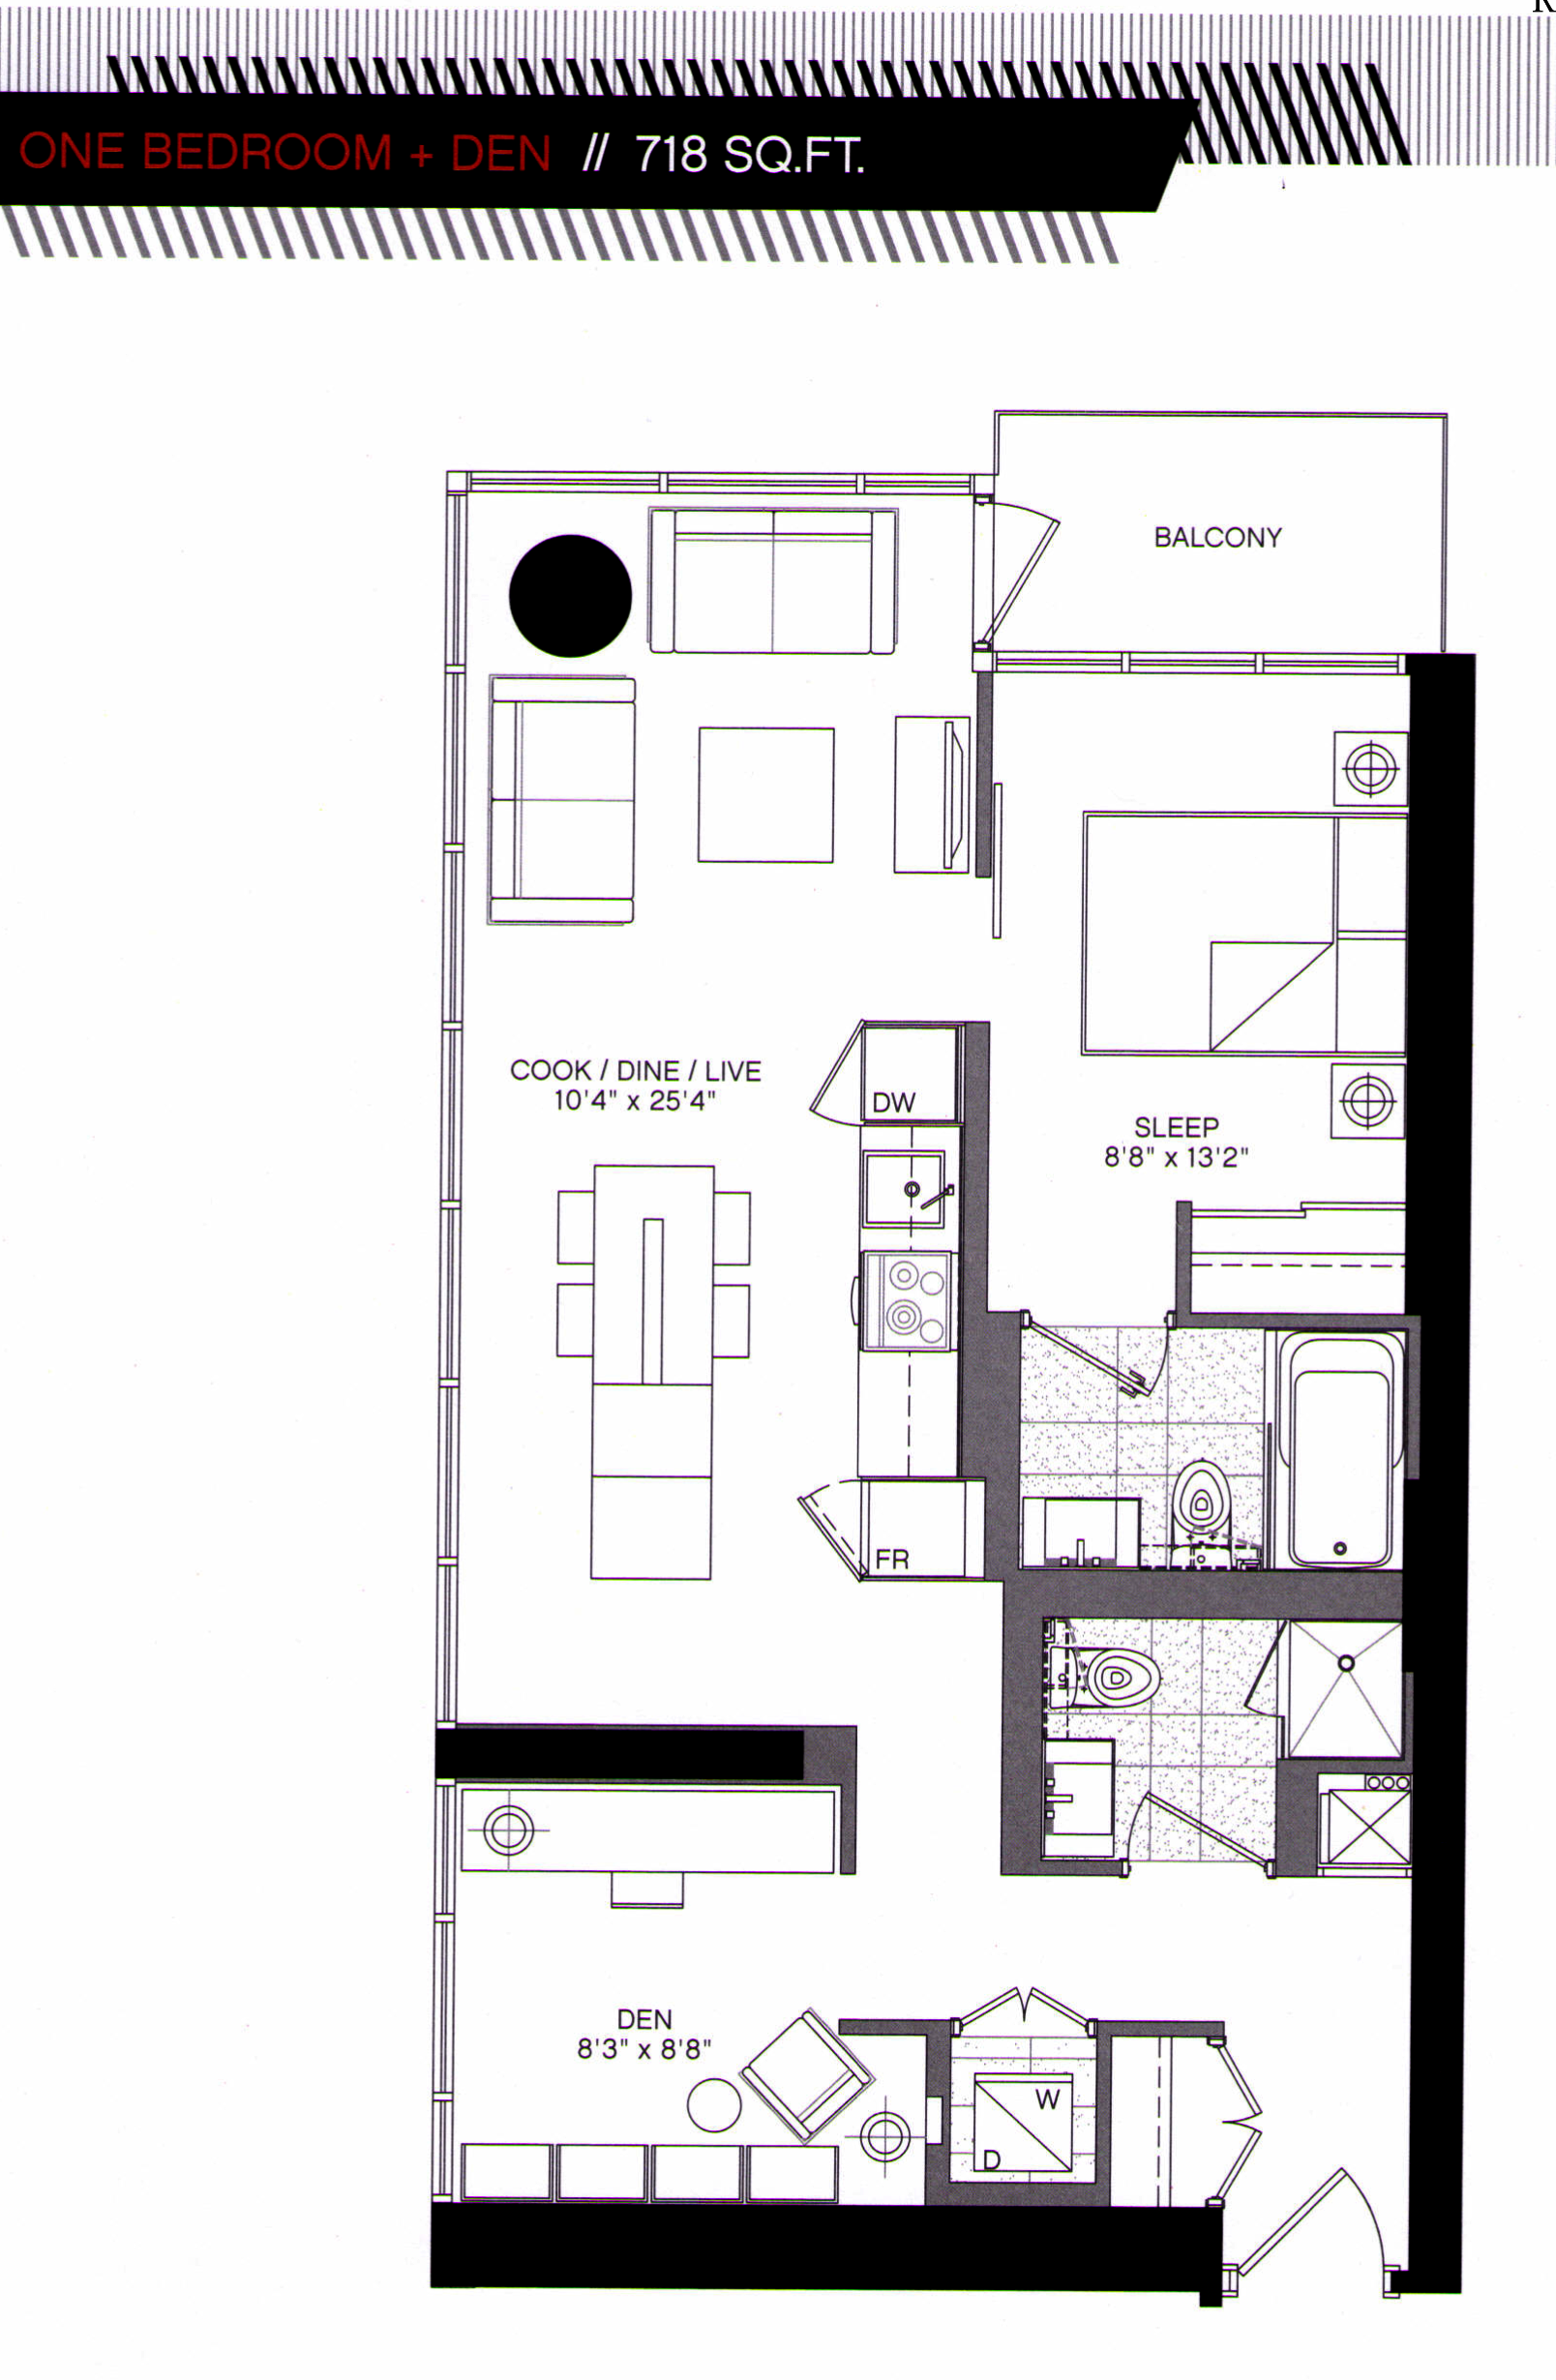 5 ST JOSEPH - FLOORPLAN ONE PLUS DEN 718 SQ FT - CONTACT YOSS KAPLAN